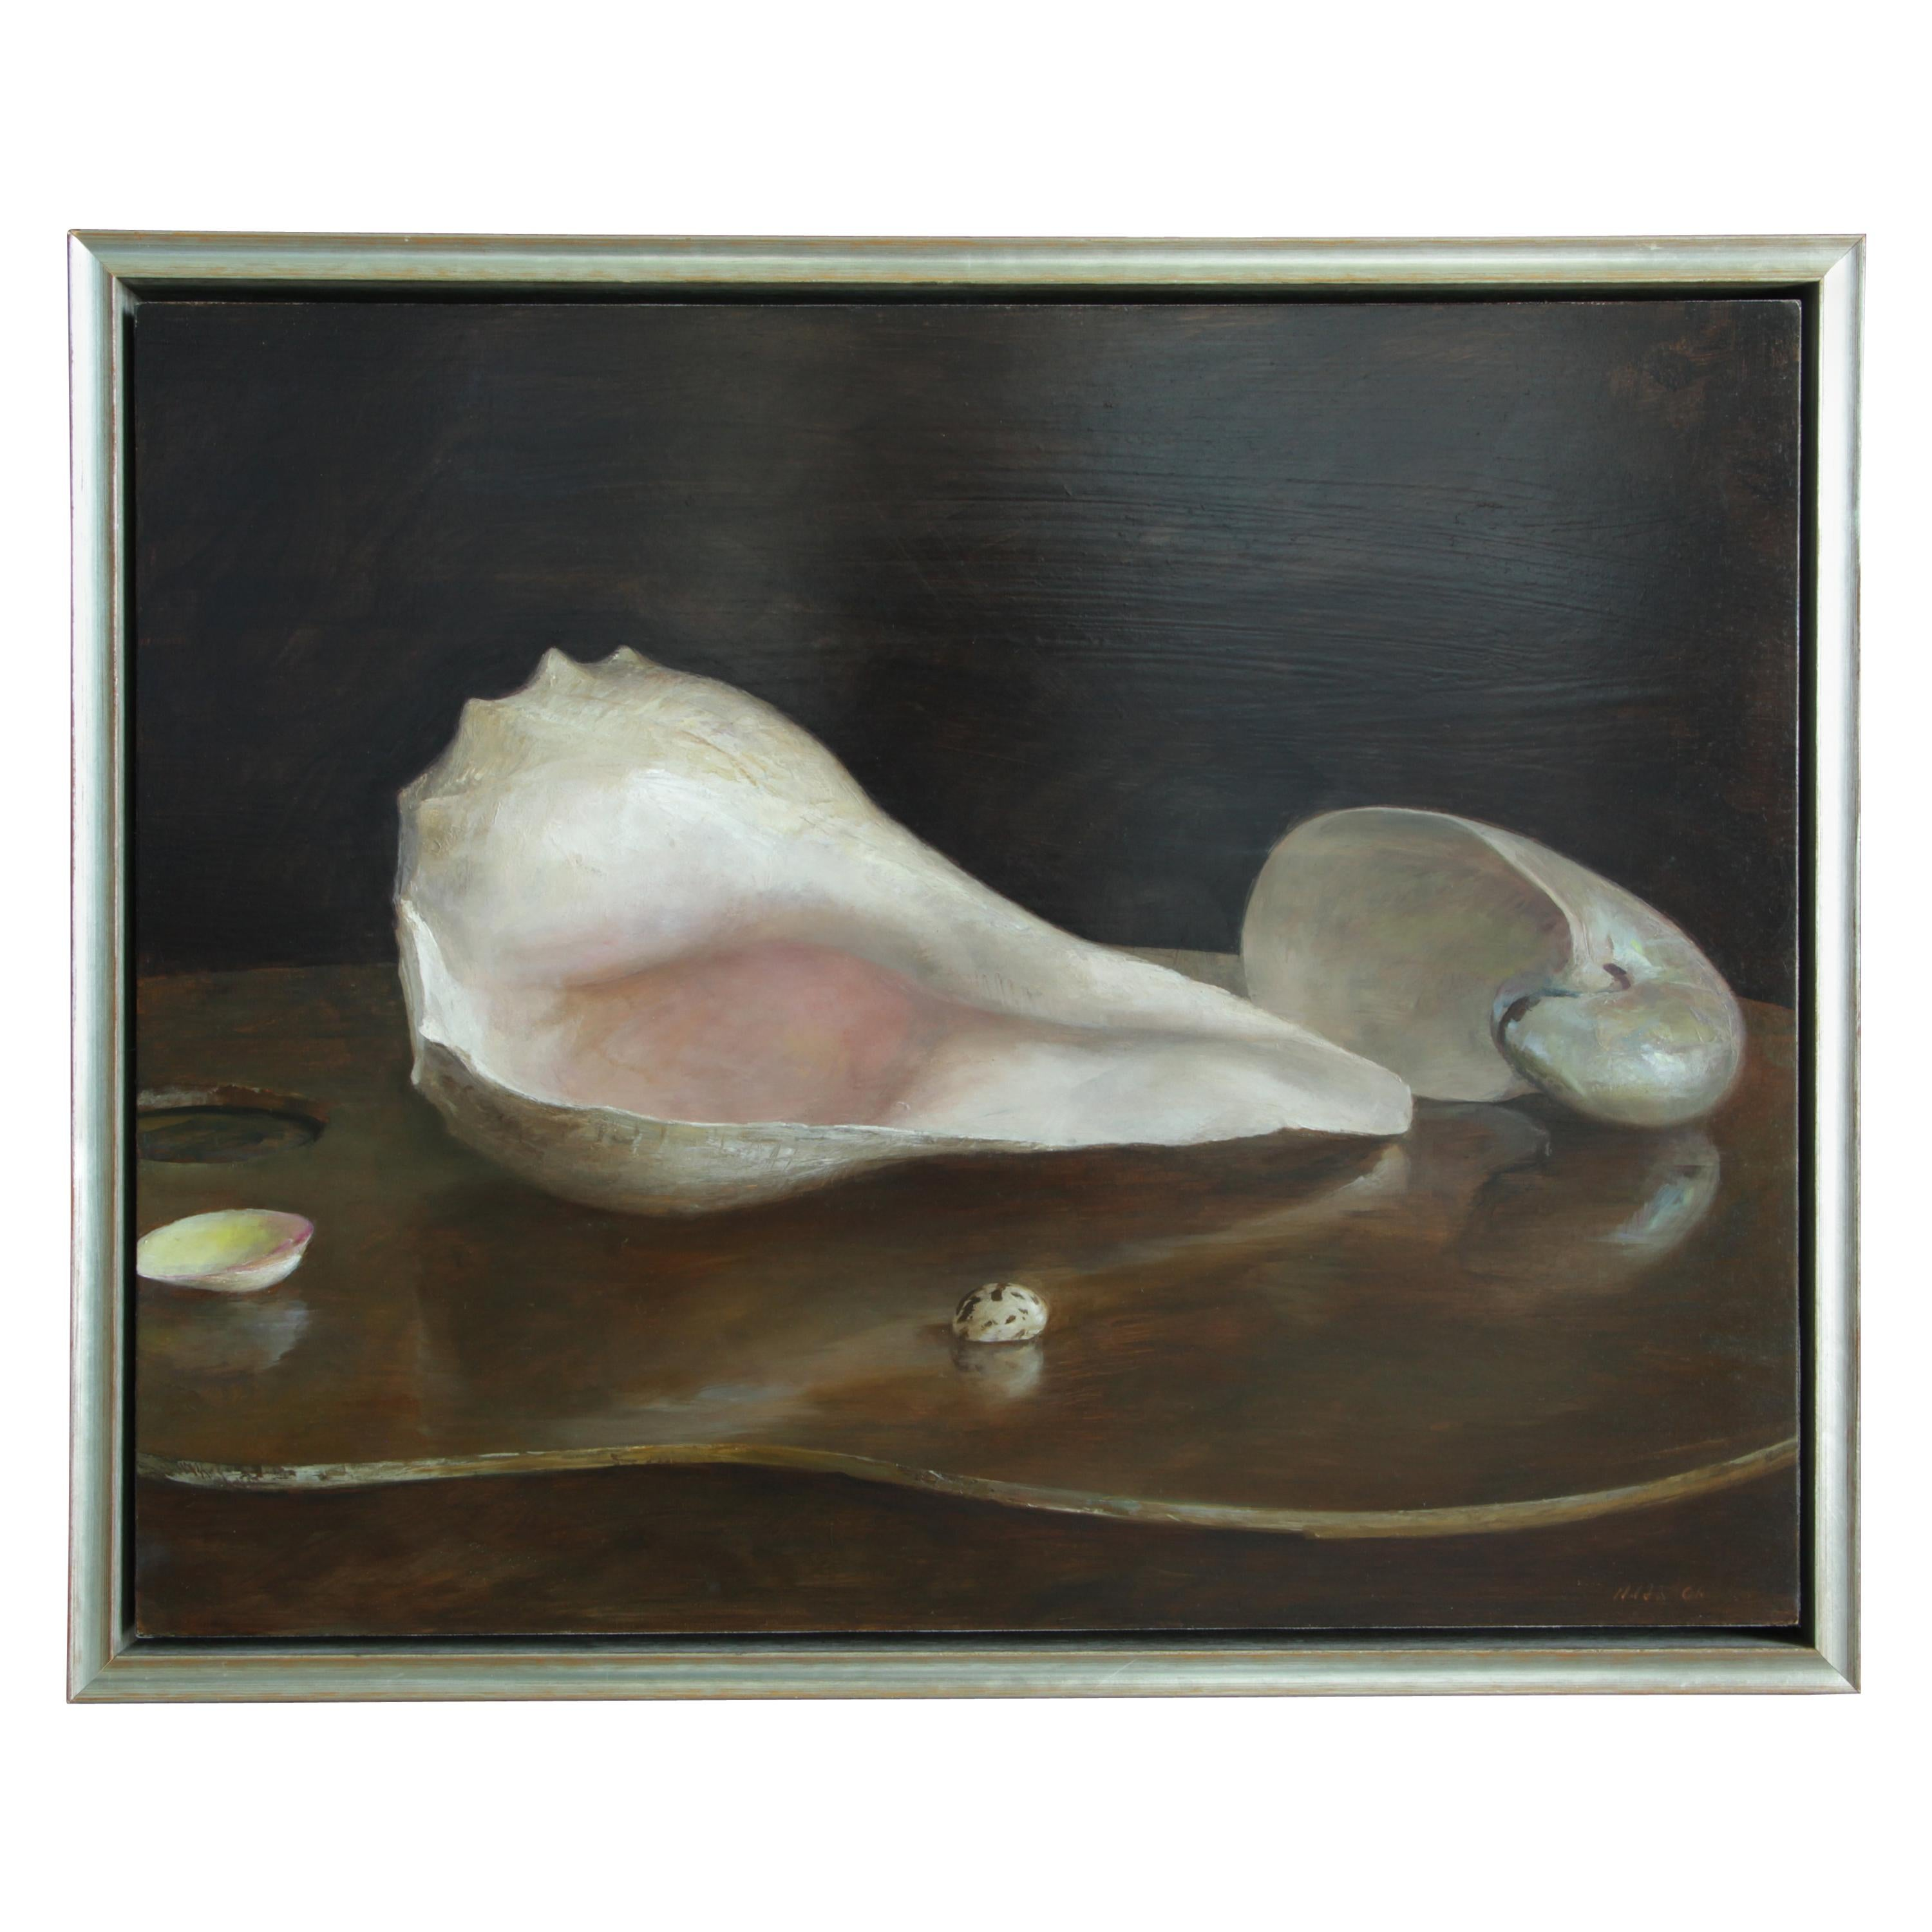 Sea Shells on an Artist's Palette, Original Oil Painting by Helen Oh